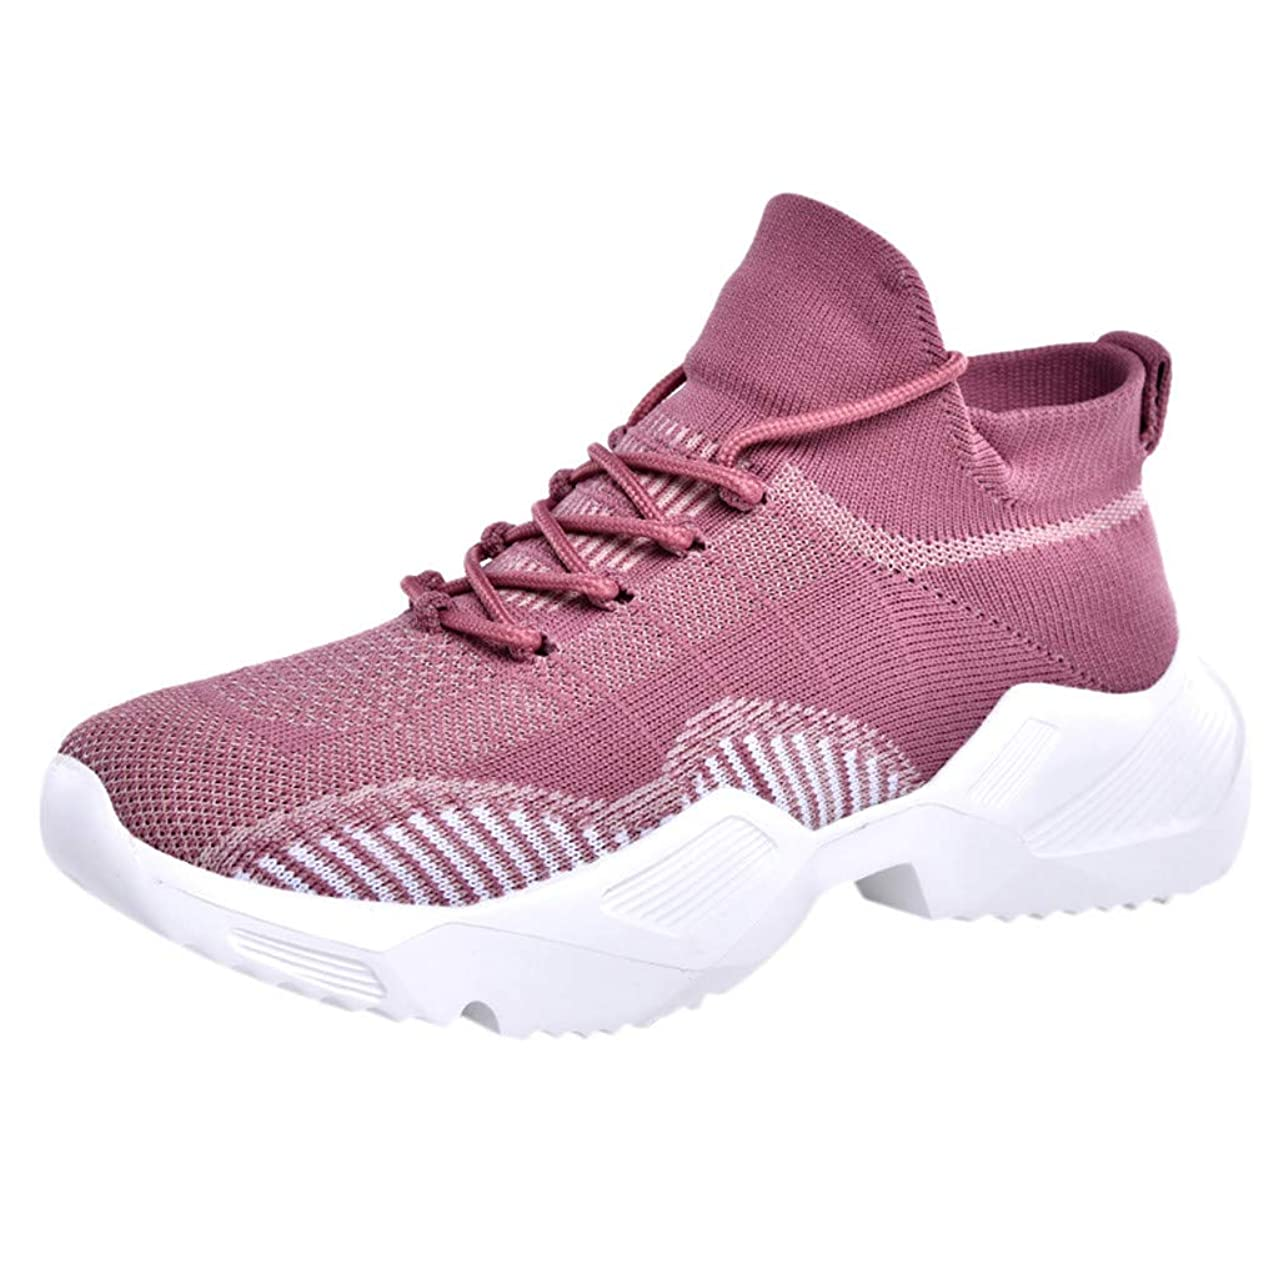 Hurrybuy Walking Shoes Women Fashion Breathable Sneakers Casual Athletic Lightweight Outdoor Sports Shoes